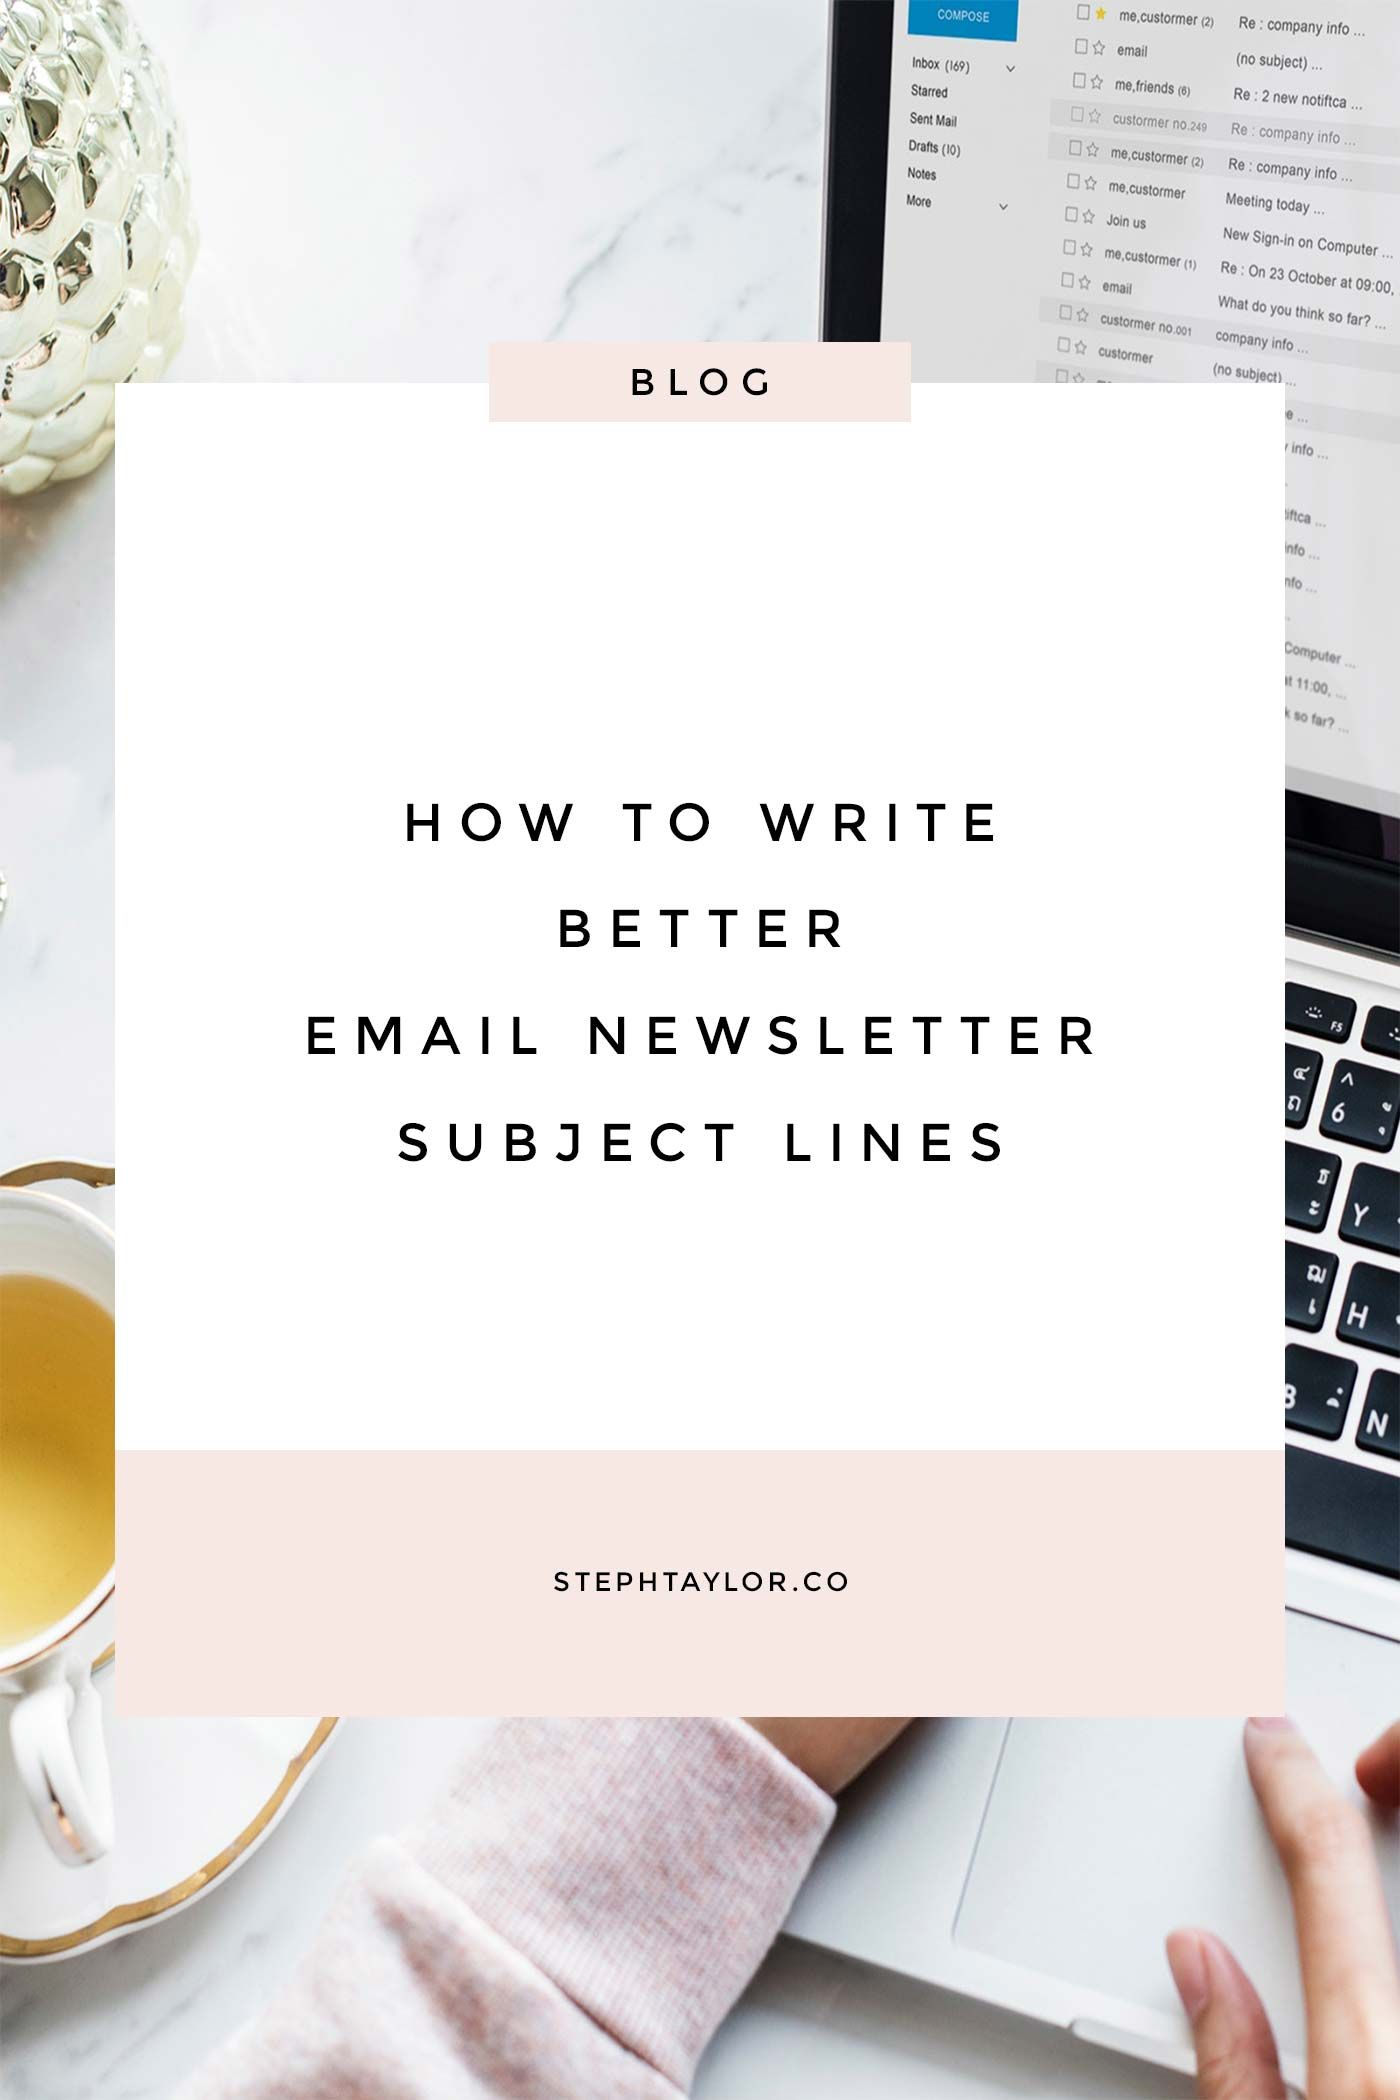 How to write better subject lines for your email